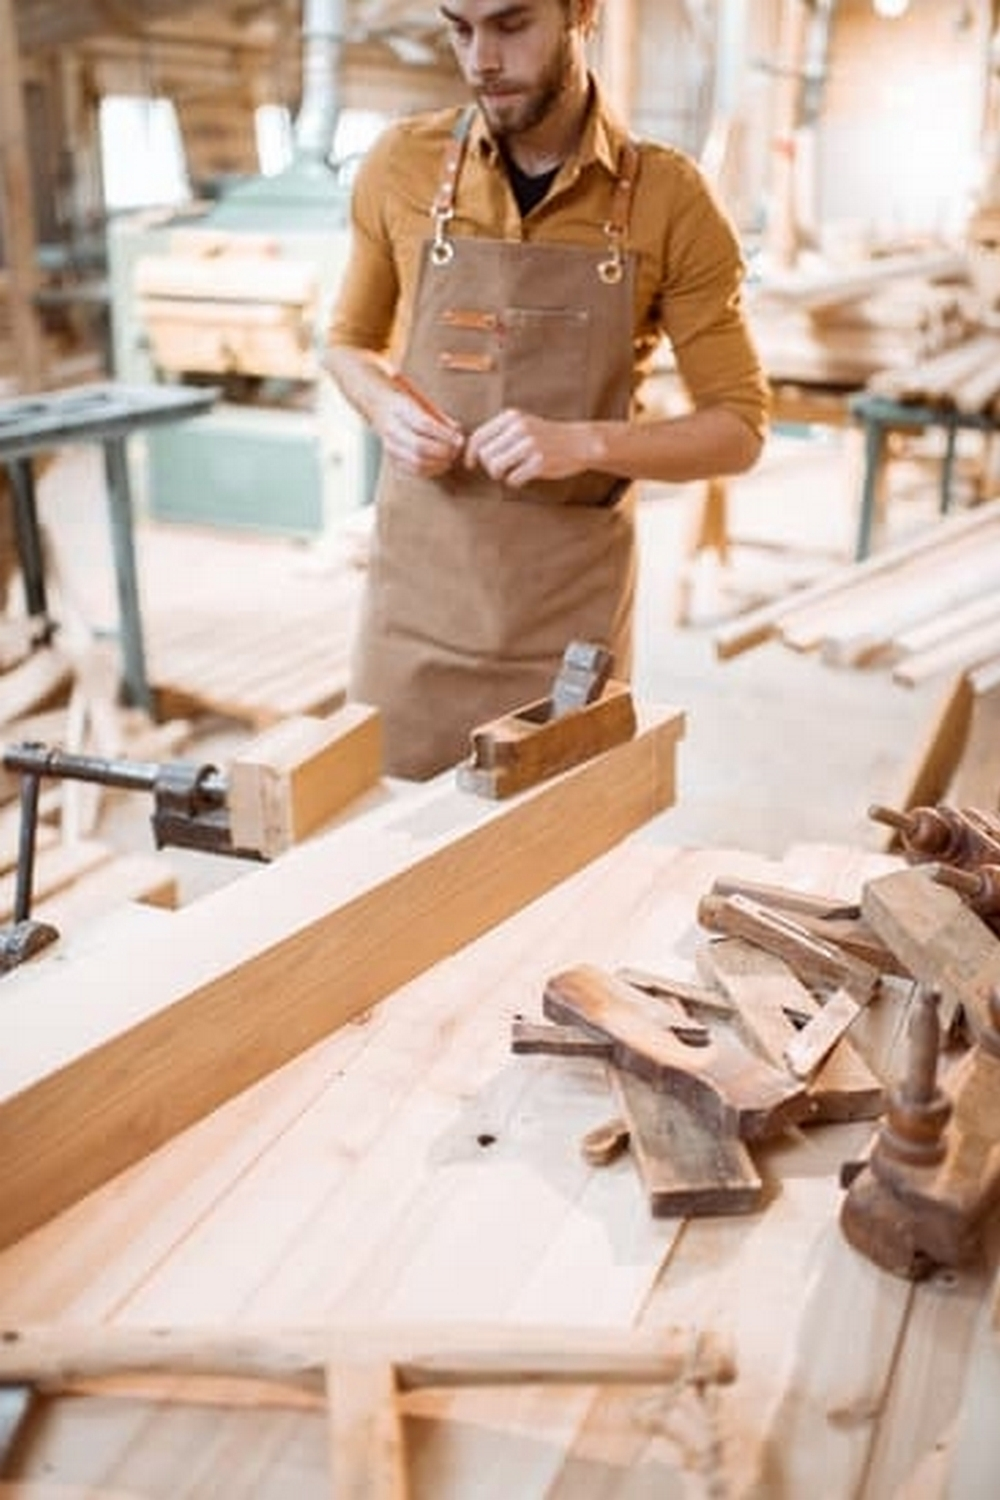 woodworking is easy to get into if you know what to do first